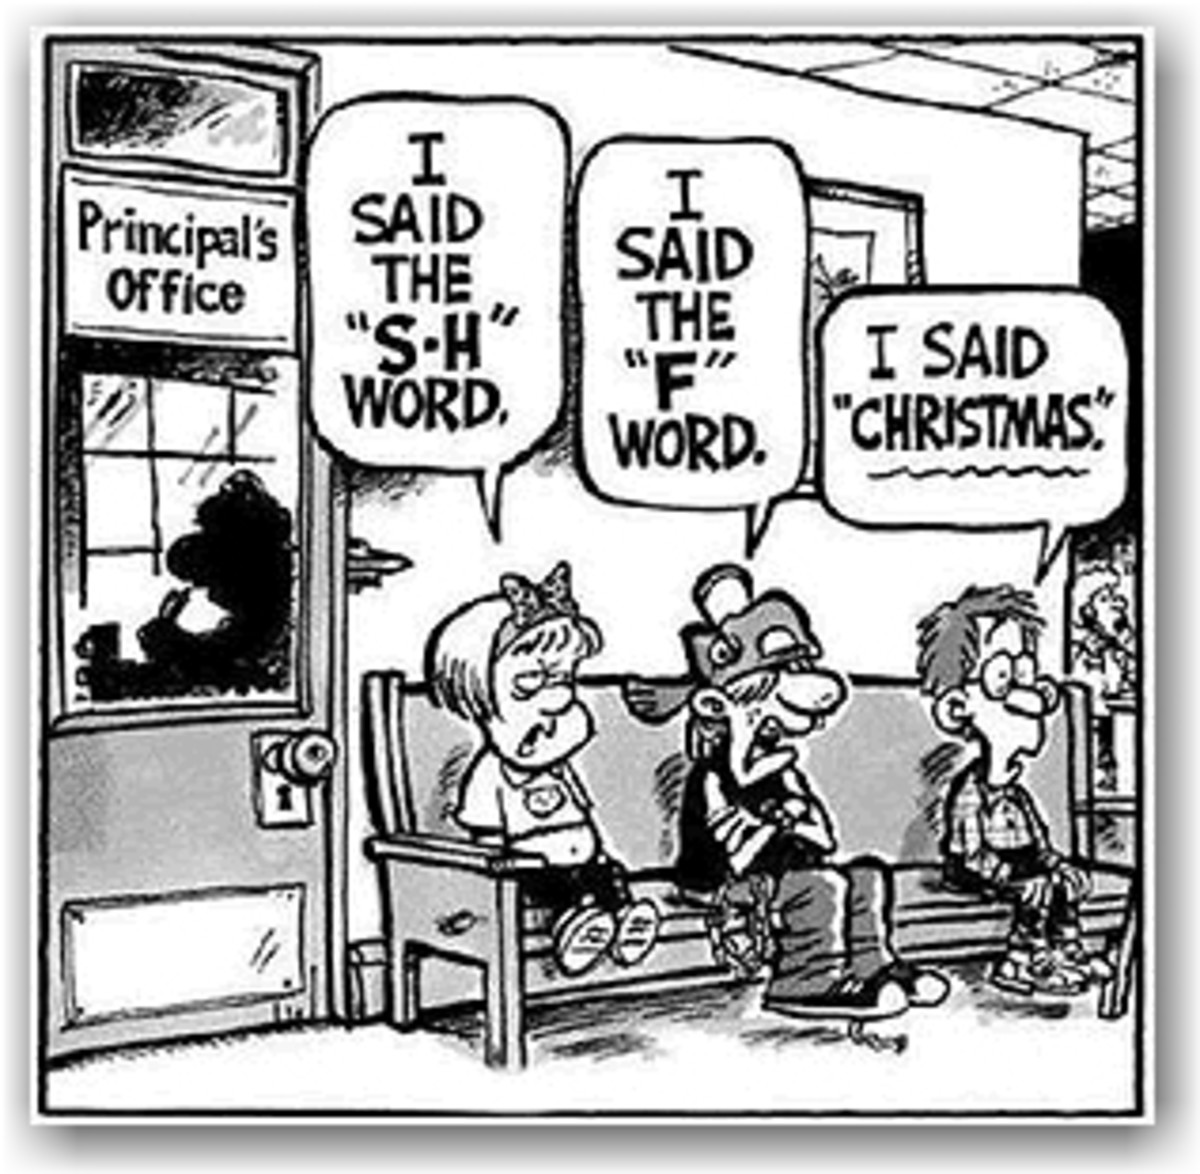 CHRISTMAS IS A CUSS WORD TO PROGRESSIVES